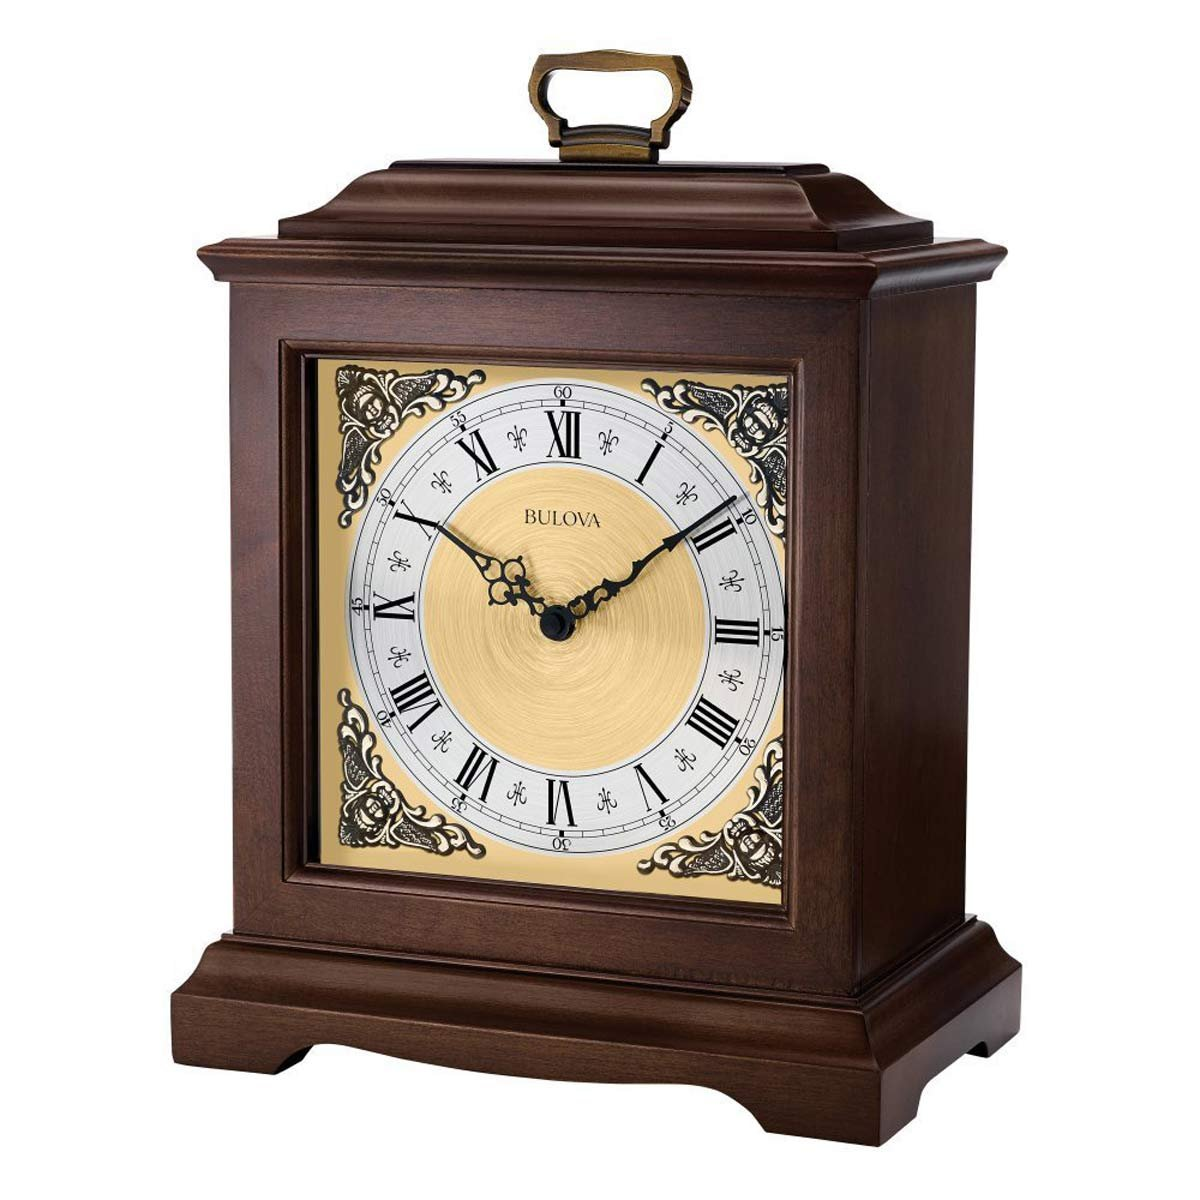 Bulova Thomaston Mantel Clock, Brown by Bulova